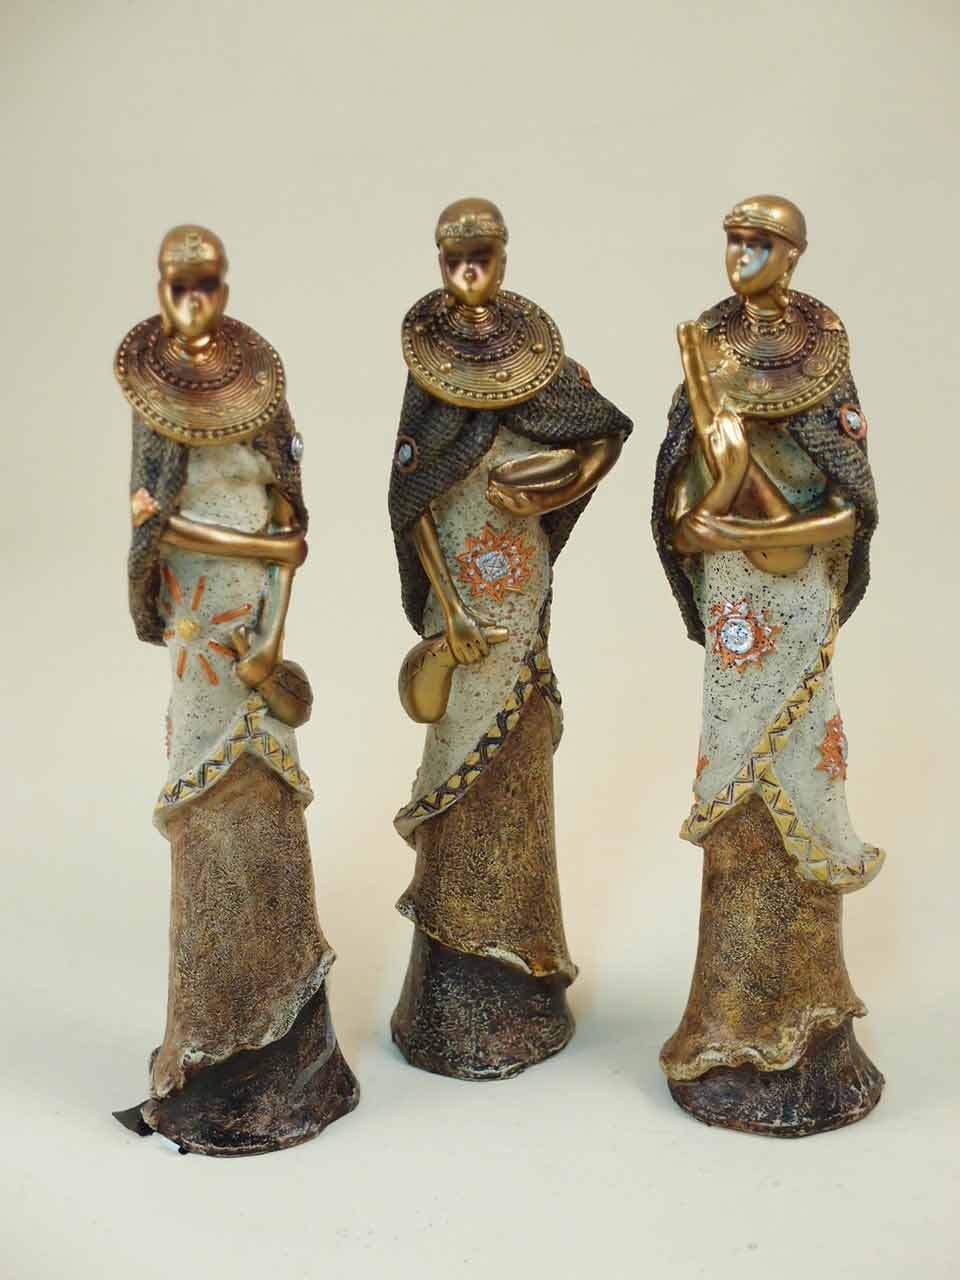 Soprammobile statuette decorative donne masai resina